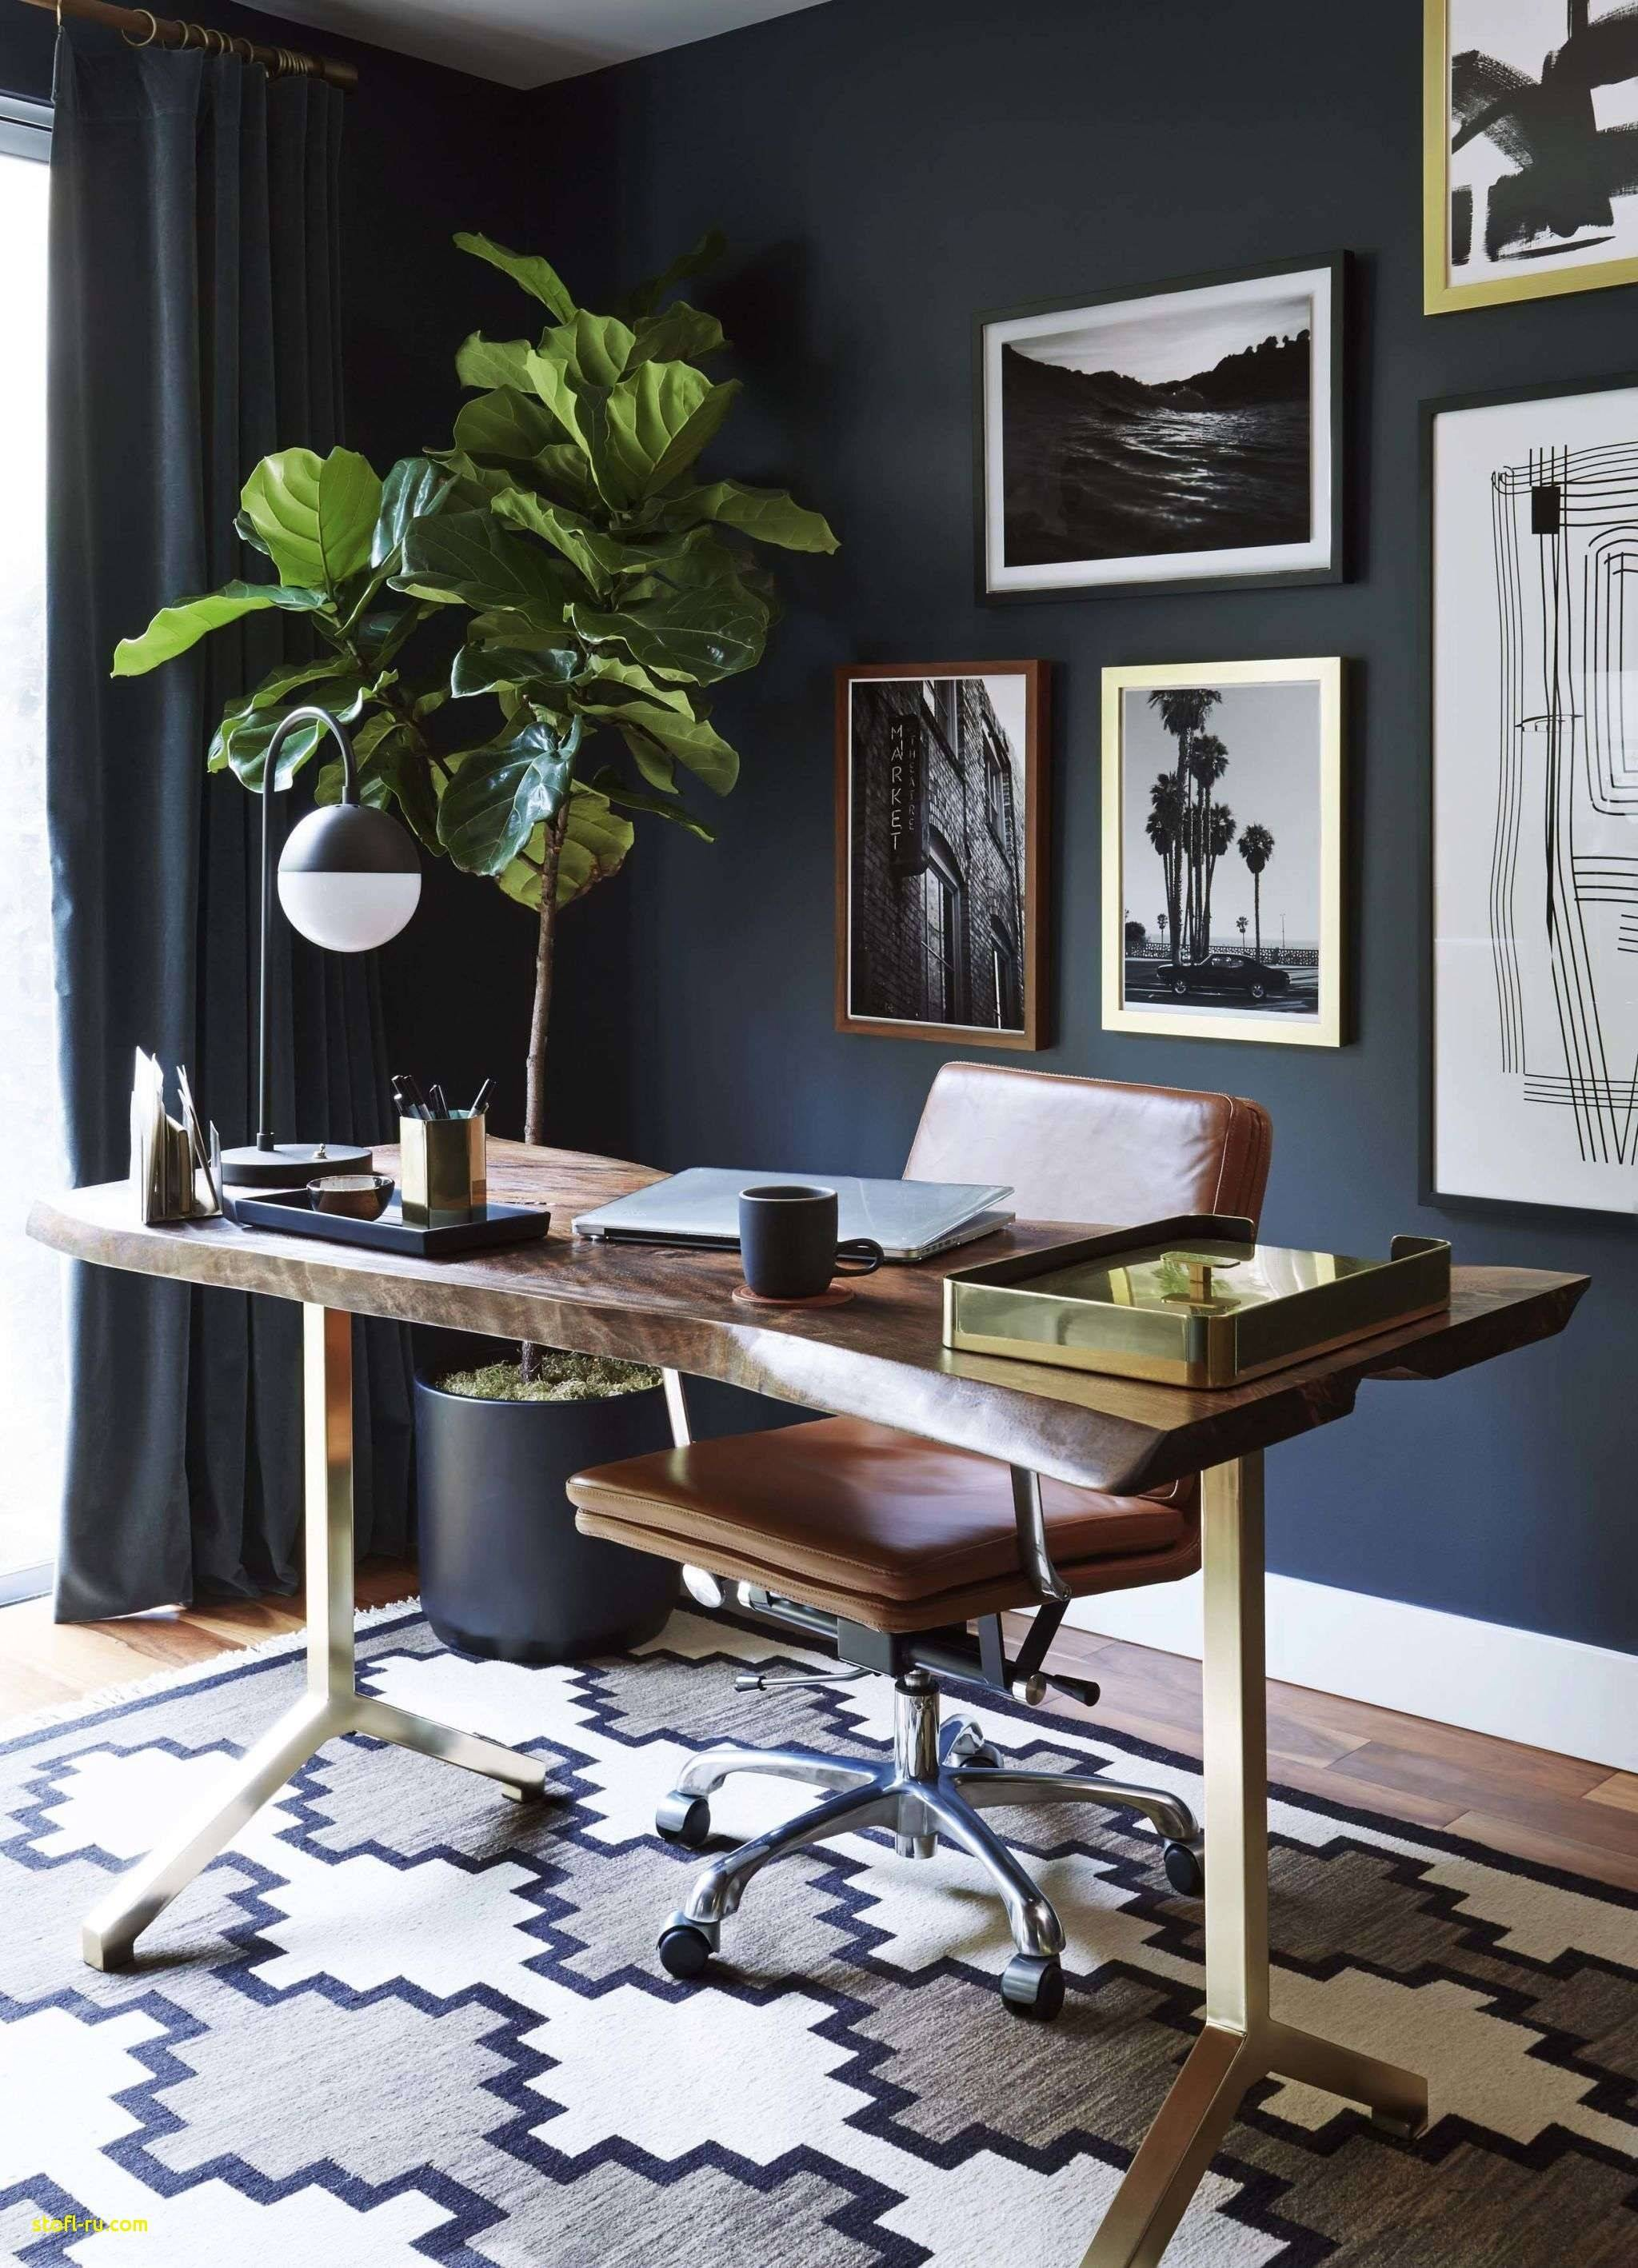 interior design home office images office images simple office images 9758 new call home fice 9022 used jaguar xe 2 0d home fice interior design